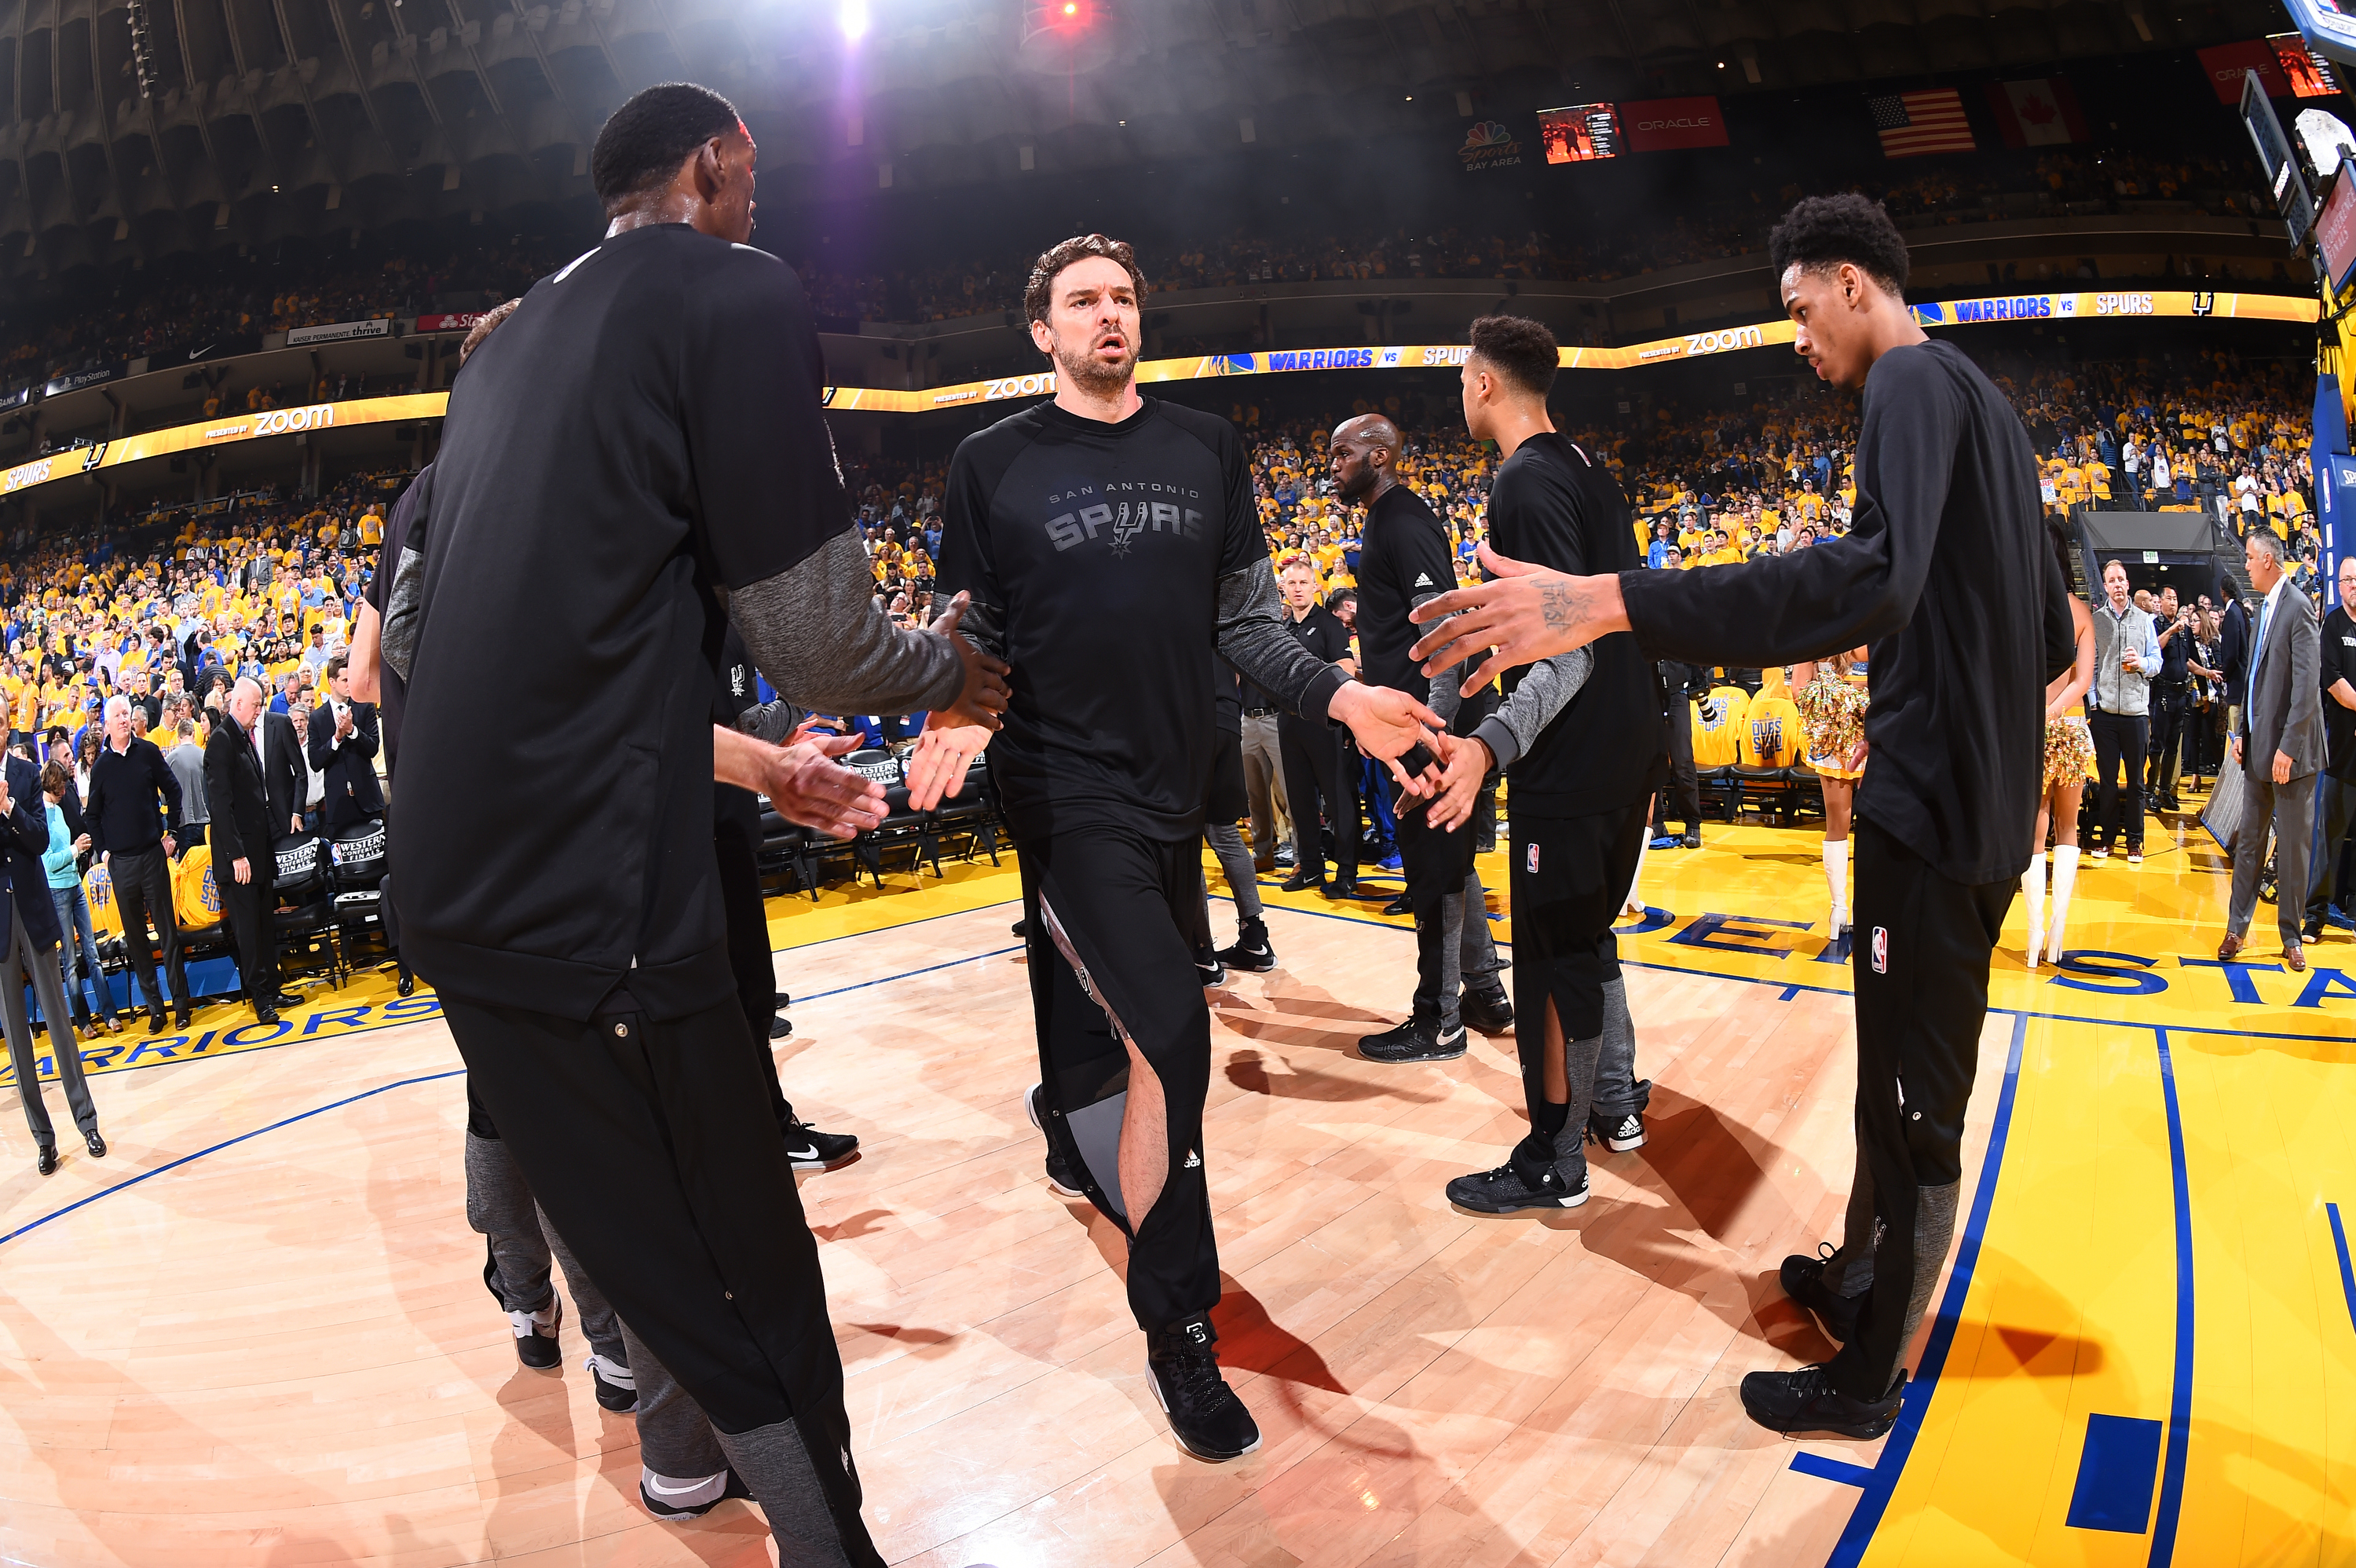 683948936-san-antonio-spurs-v-golden-state-warriors-game-two.jpg